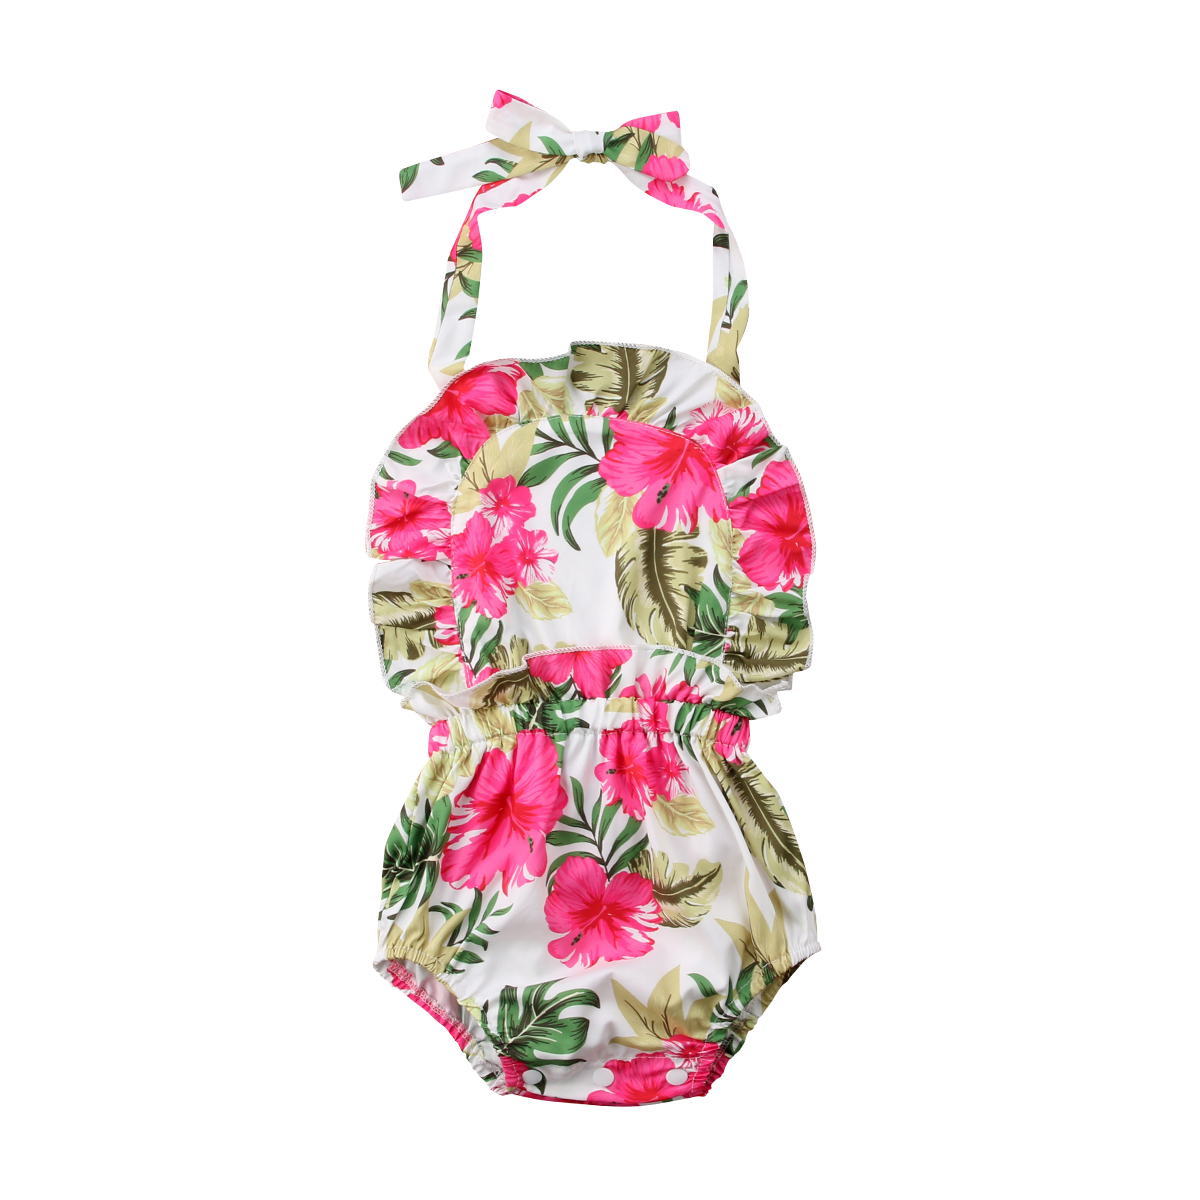 Toddle Baby Girls Infant Clothing Ruffles Floral Strap Jumpsuit Bodysuit Infant Halter Backless Summer Clothes Baby Girl 0-24M